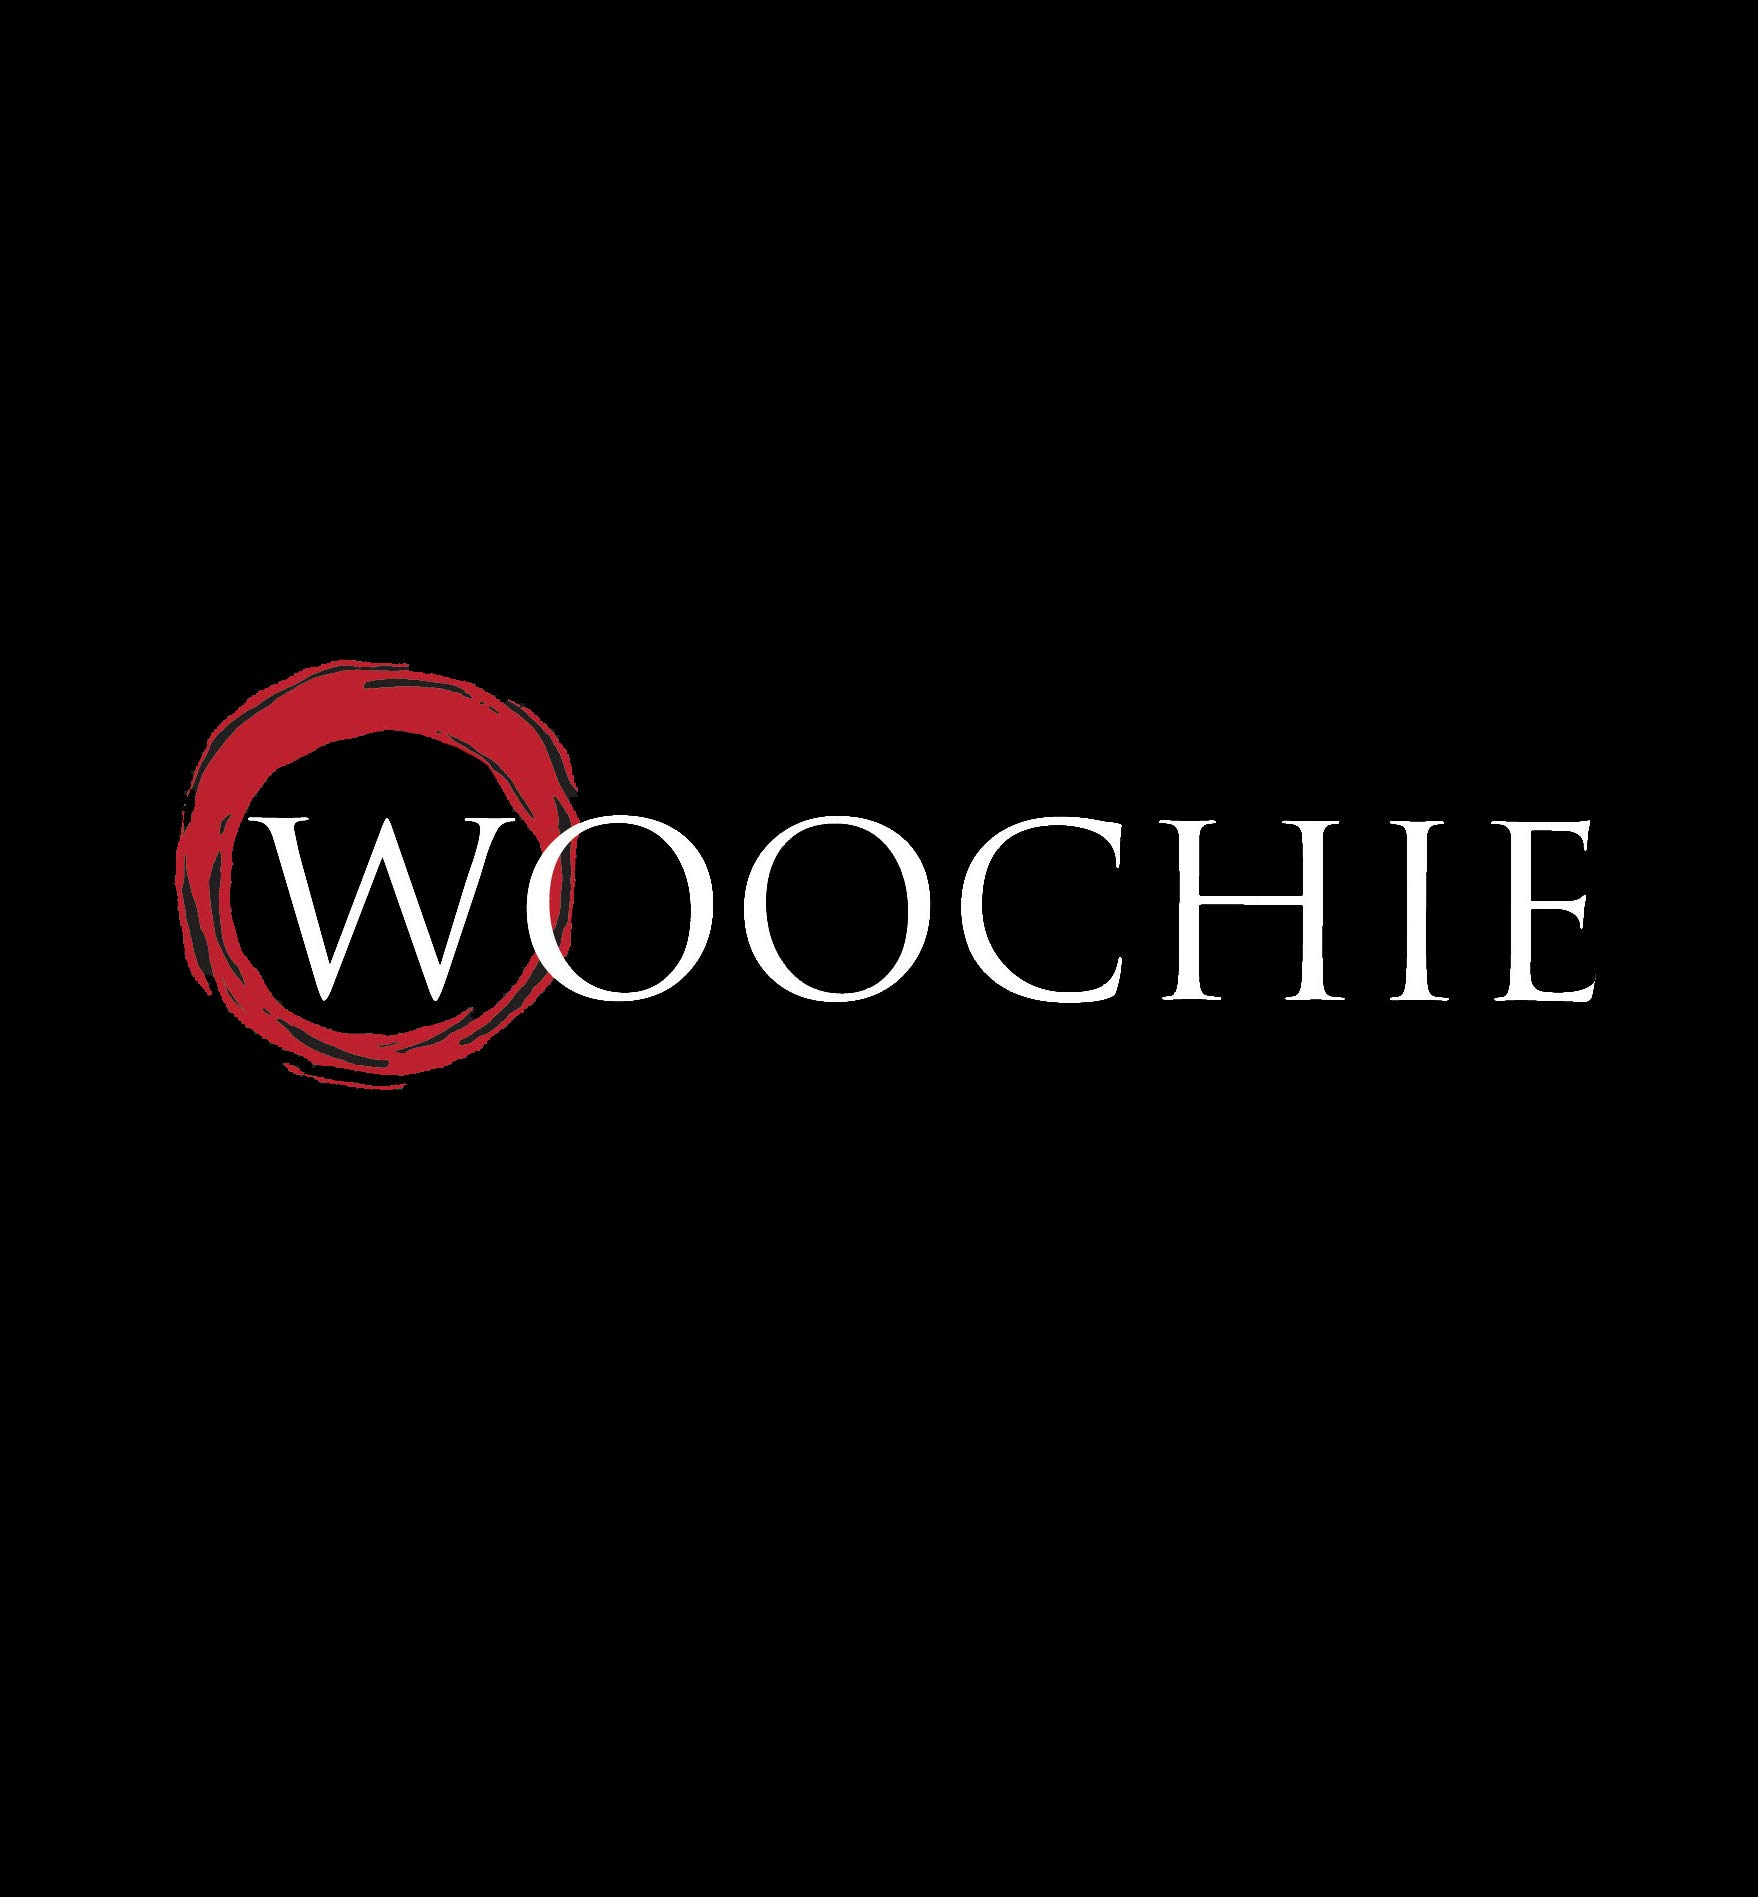 Woochie Classic Latex Appliances - Professional Quality Halloween Costume Makeup - 3D Burn by Woochie (Image #3)